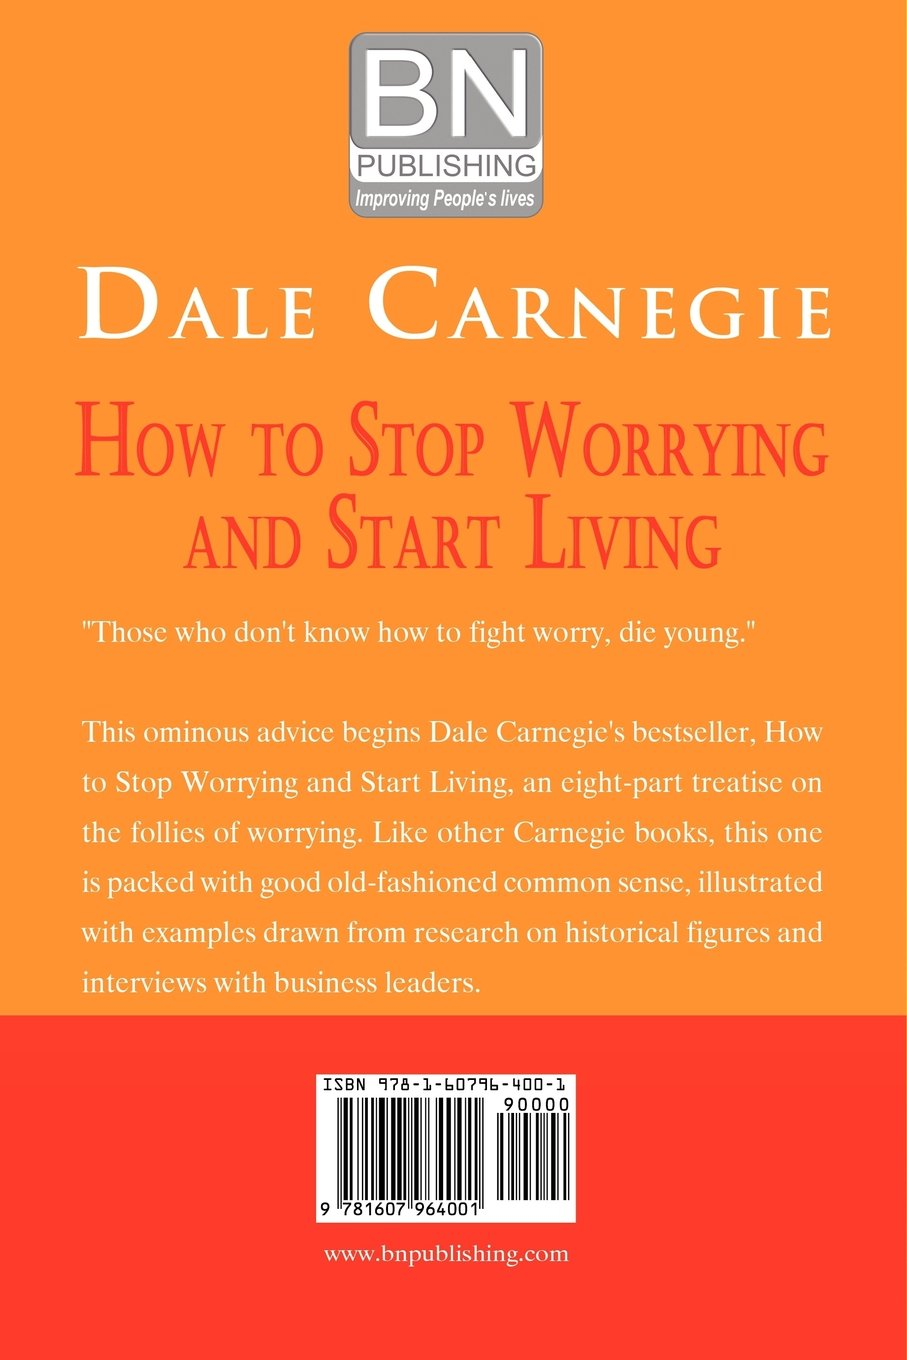 How to Stop Worrying and Start Living: Amazon.co.uk: Dale Carnegie:  9781607964001: Books